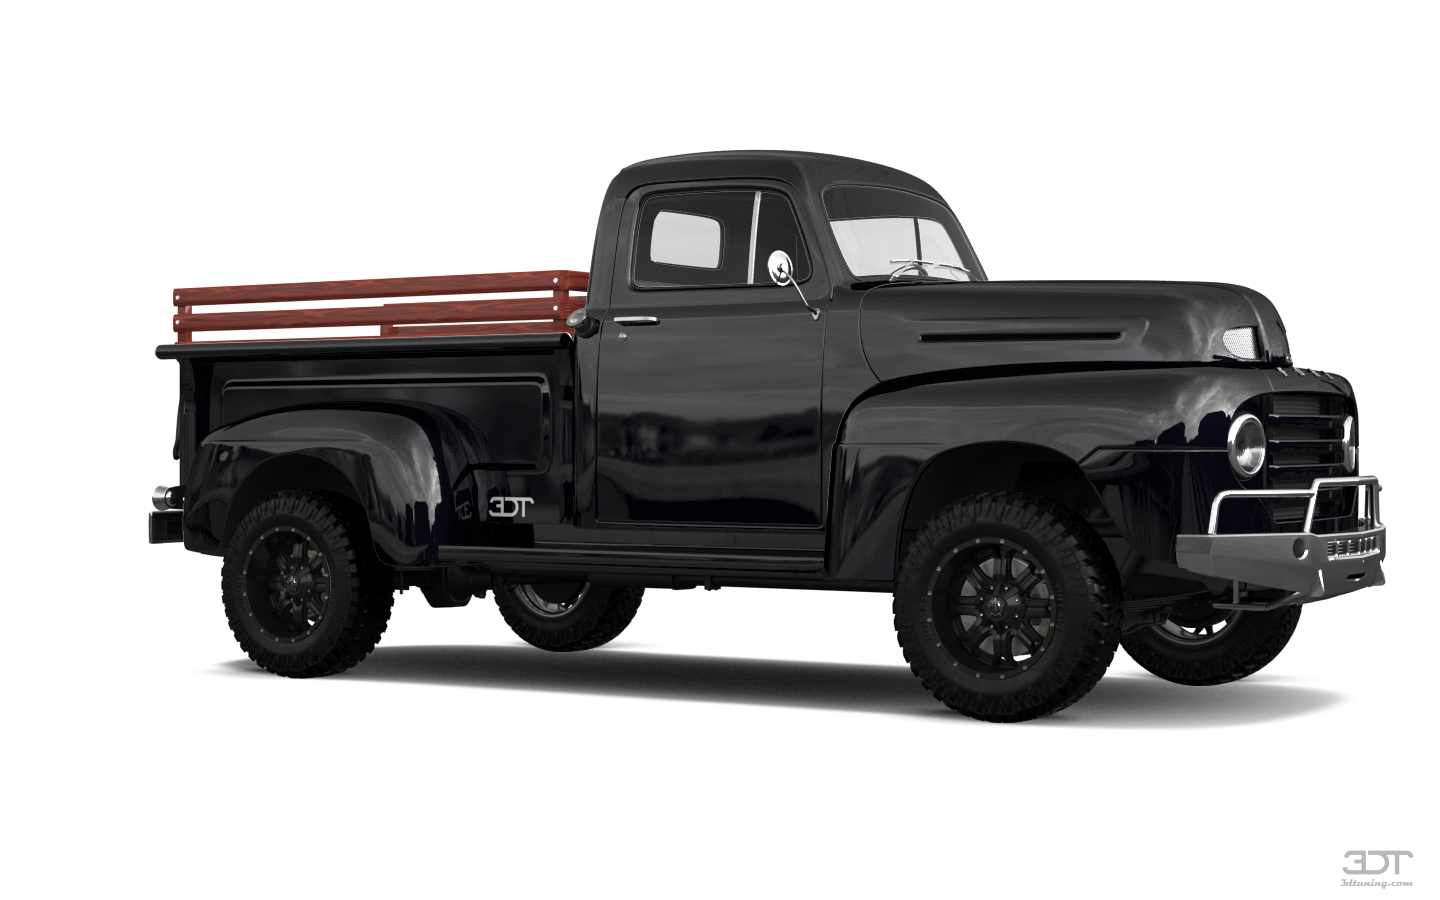 Ford F1 2 Door pickup truck 1949 tuning